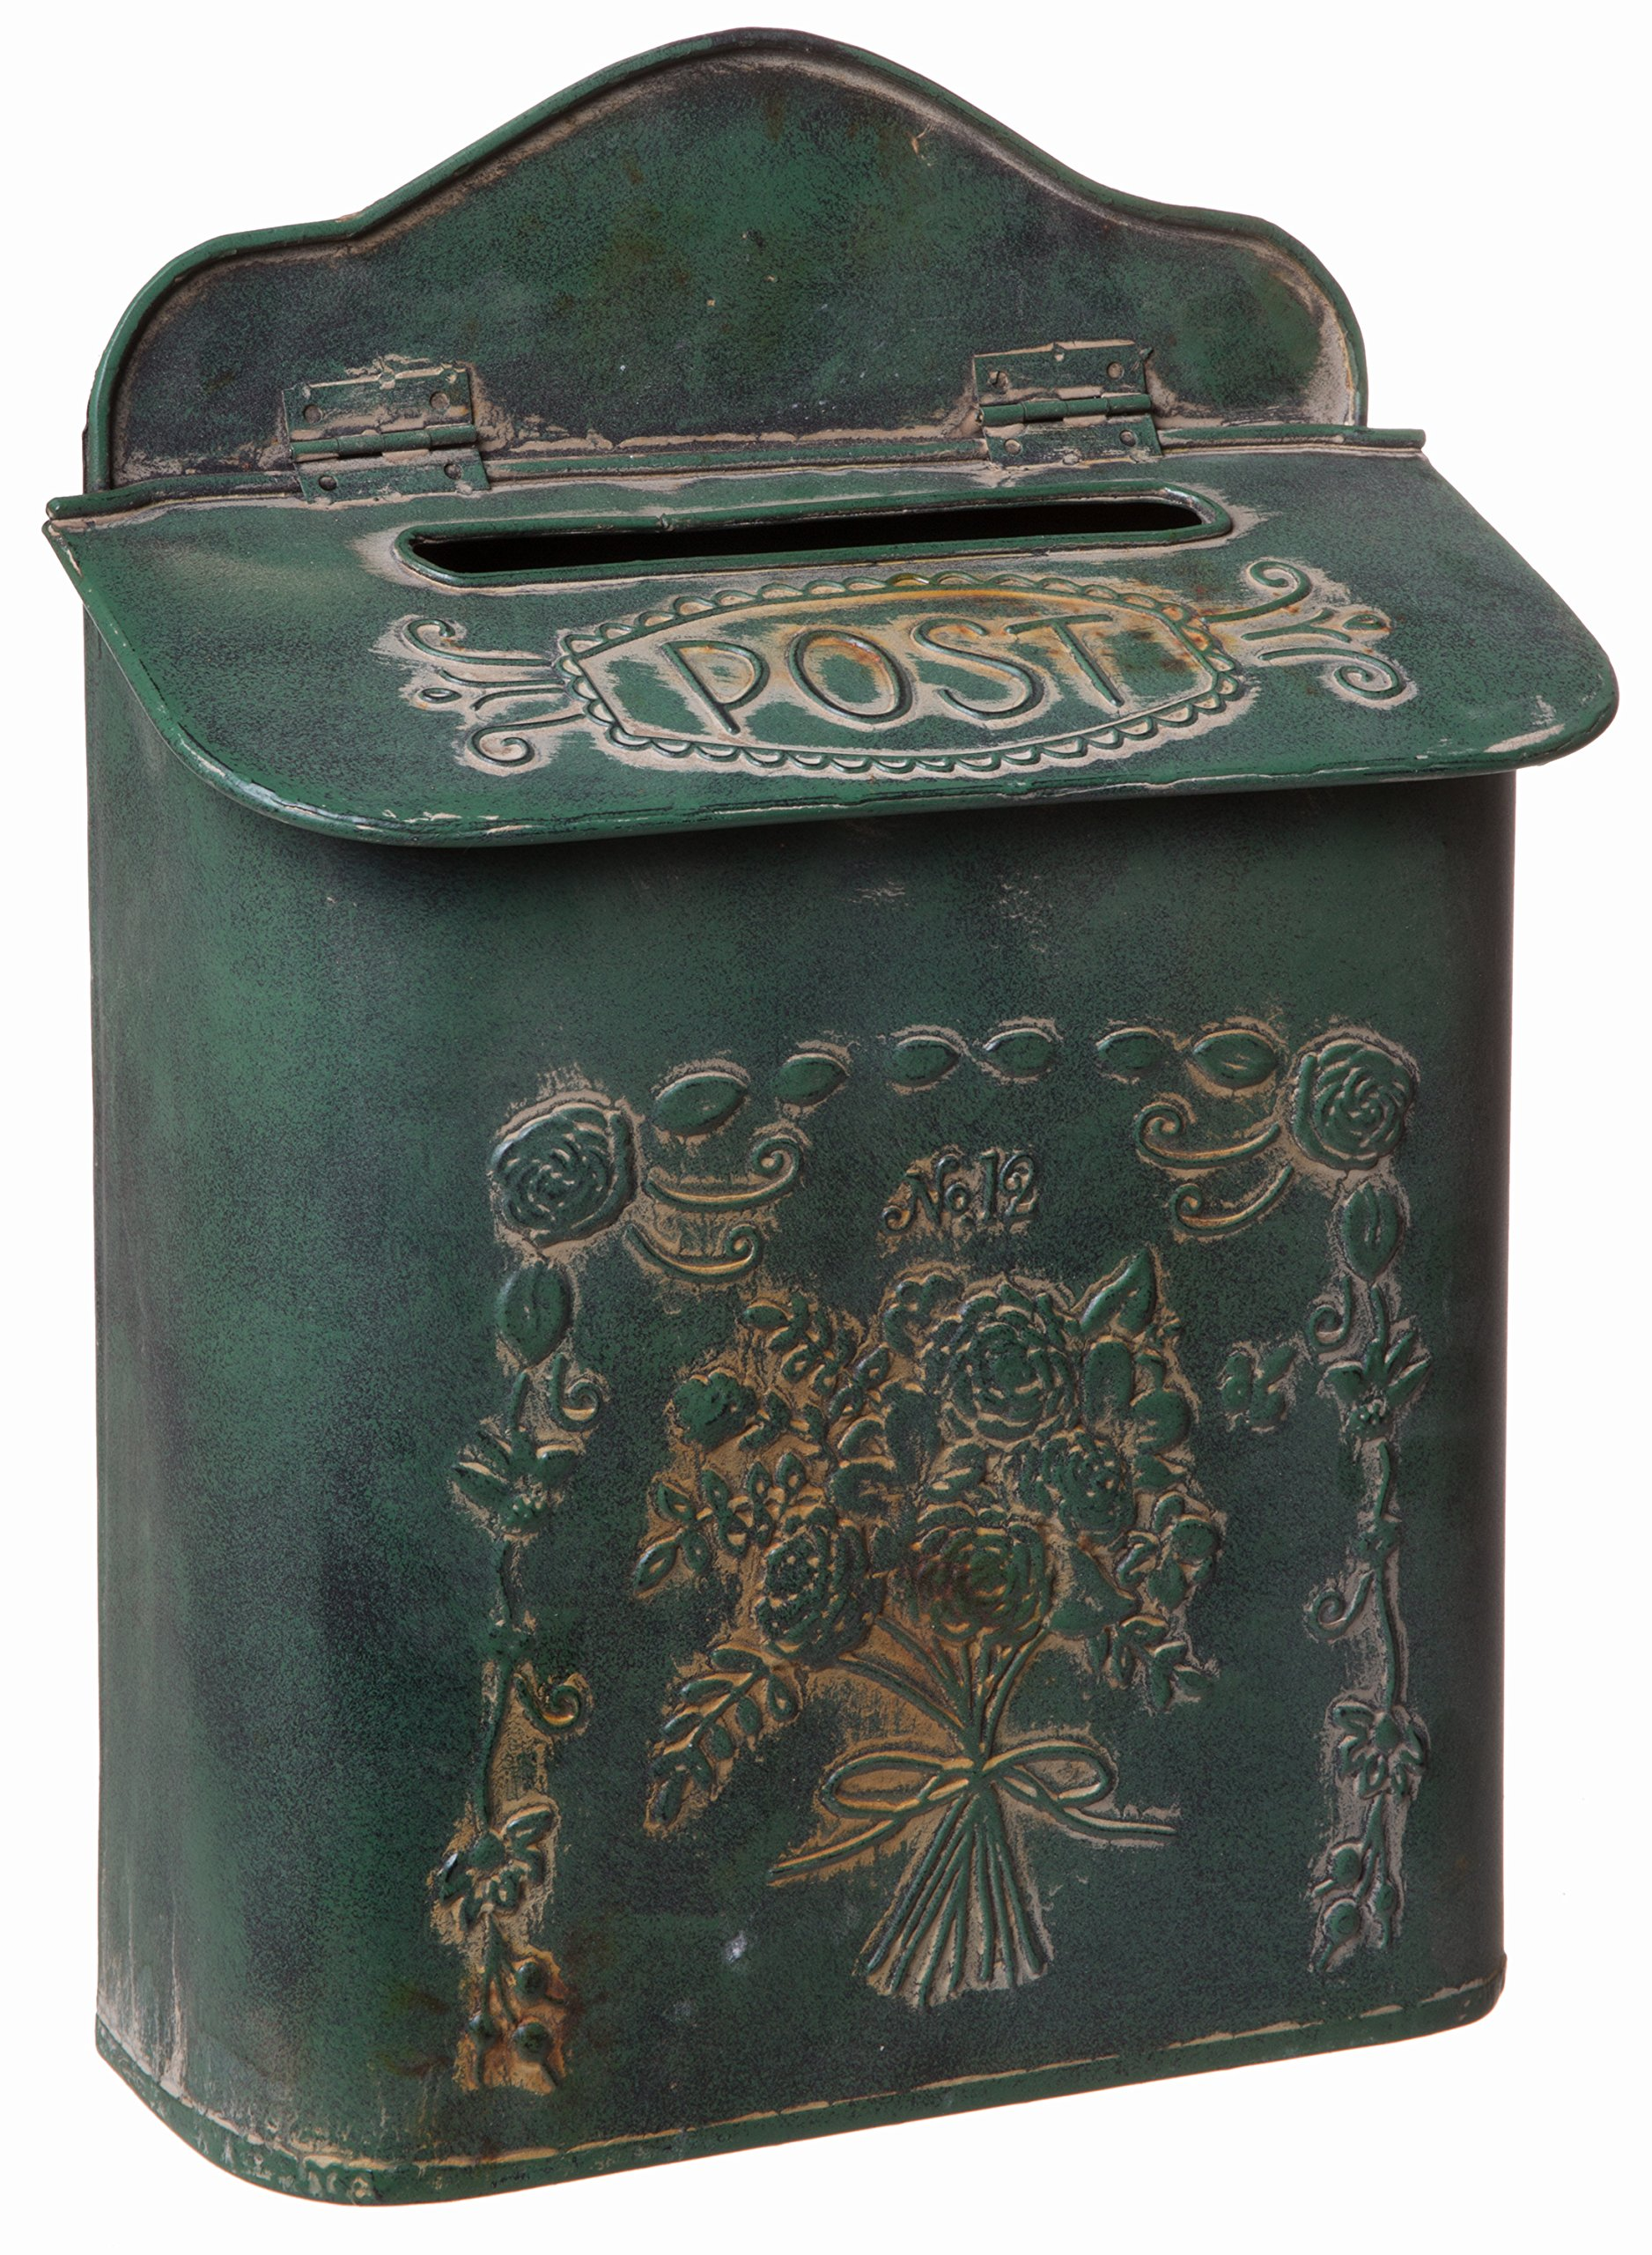 Farmhouse Rustic Style Green Tin Post MailBox Wall Mounted Design - 14 h x 10 w Inches